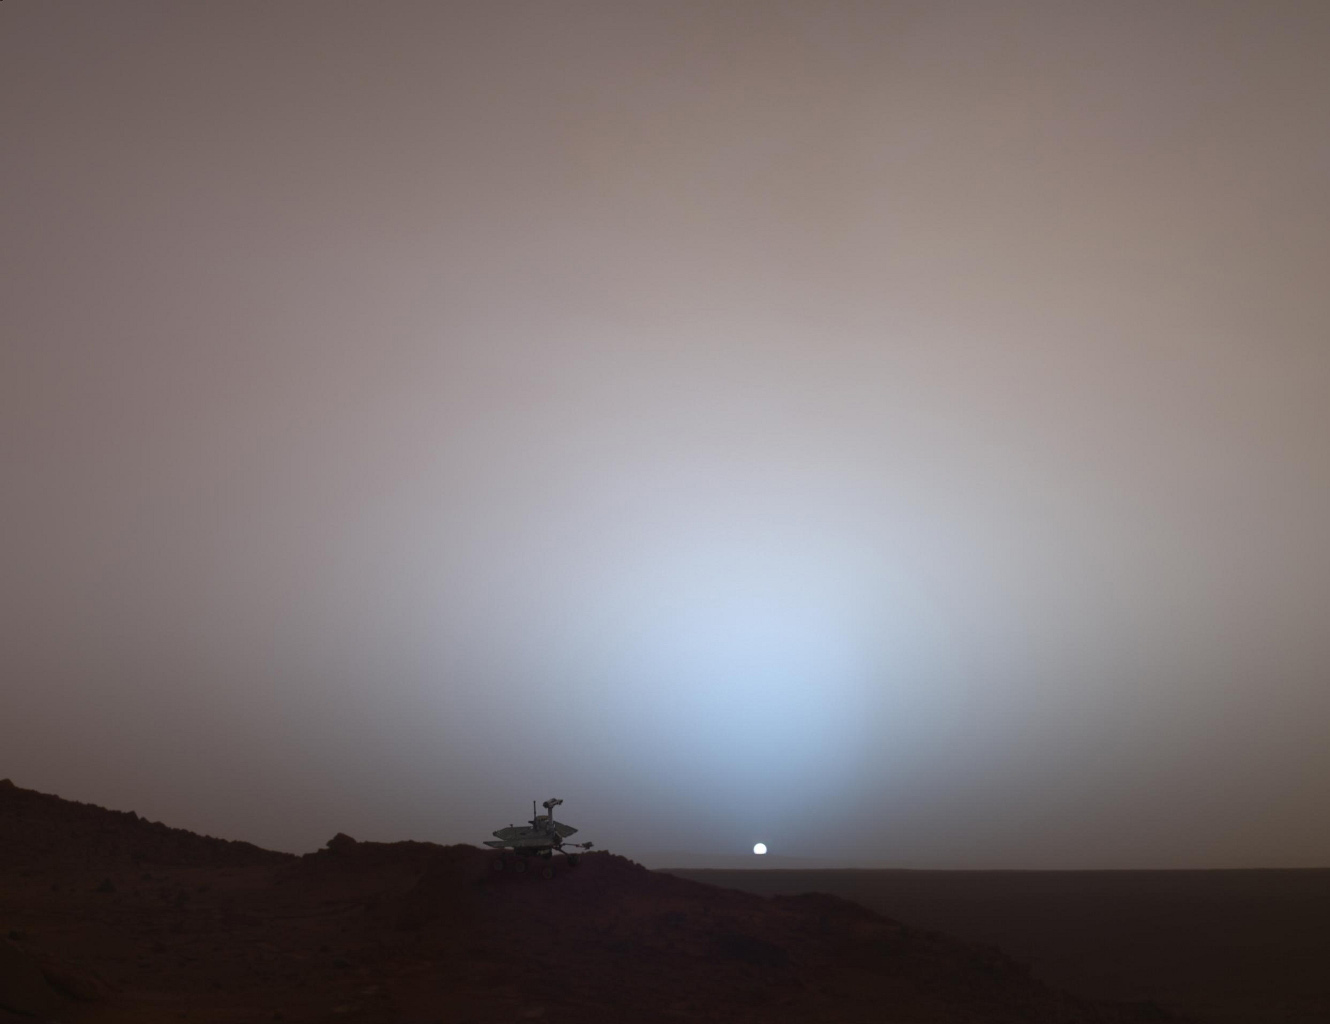 This synthetic image of NASA's Spirit Mars Exploration Rover on top of a rock called 'Jibsheet' was produced using 'Virtual Presence in Space' technology.